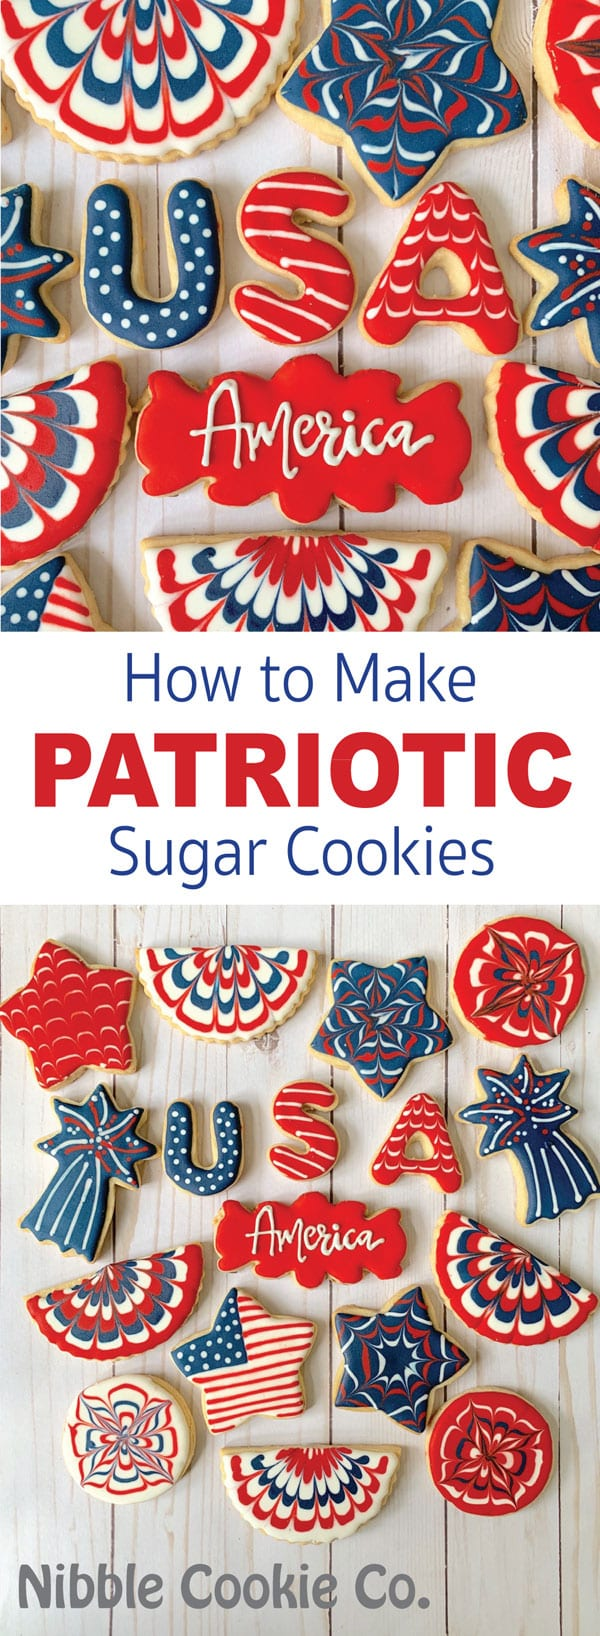 How to make patriotic sugar cookies for july 4th